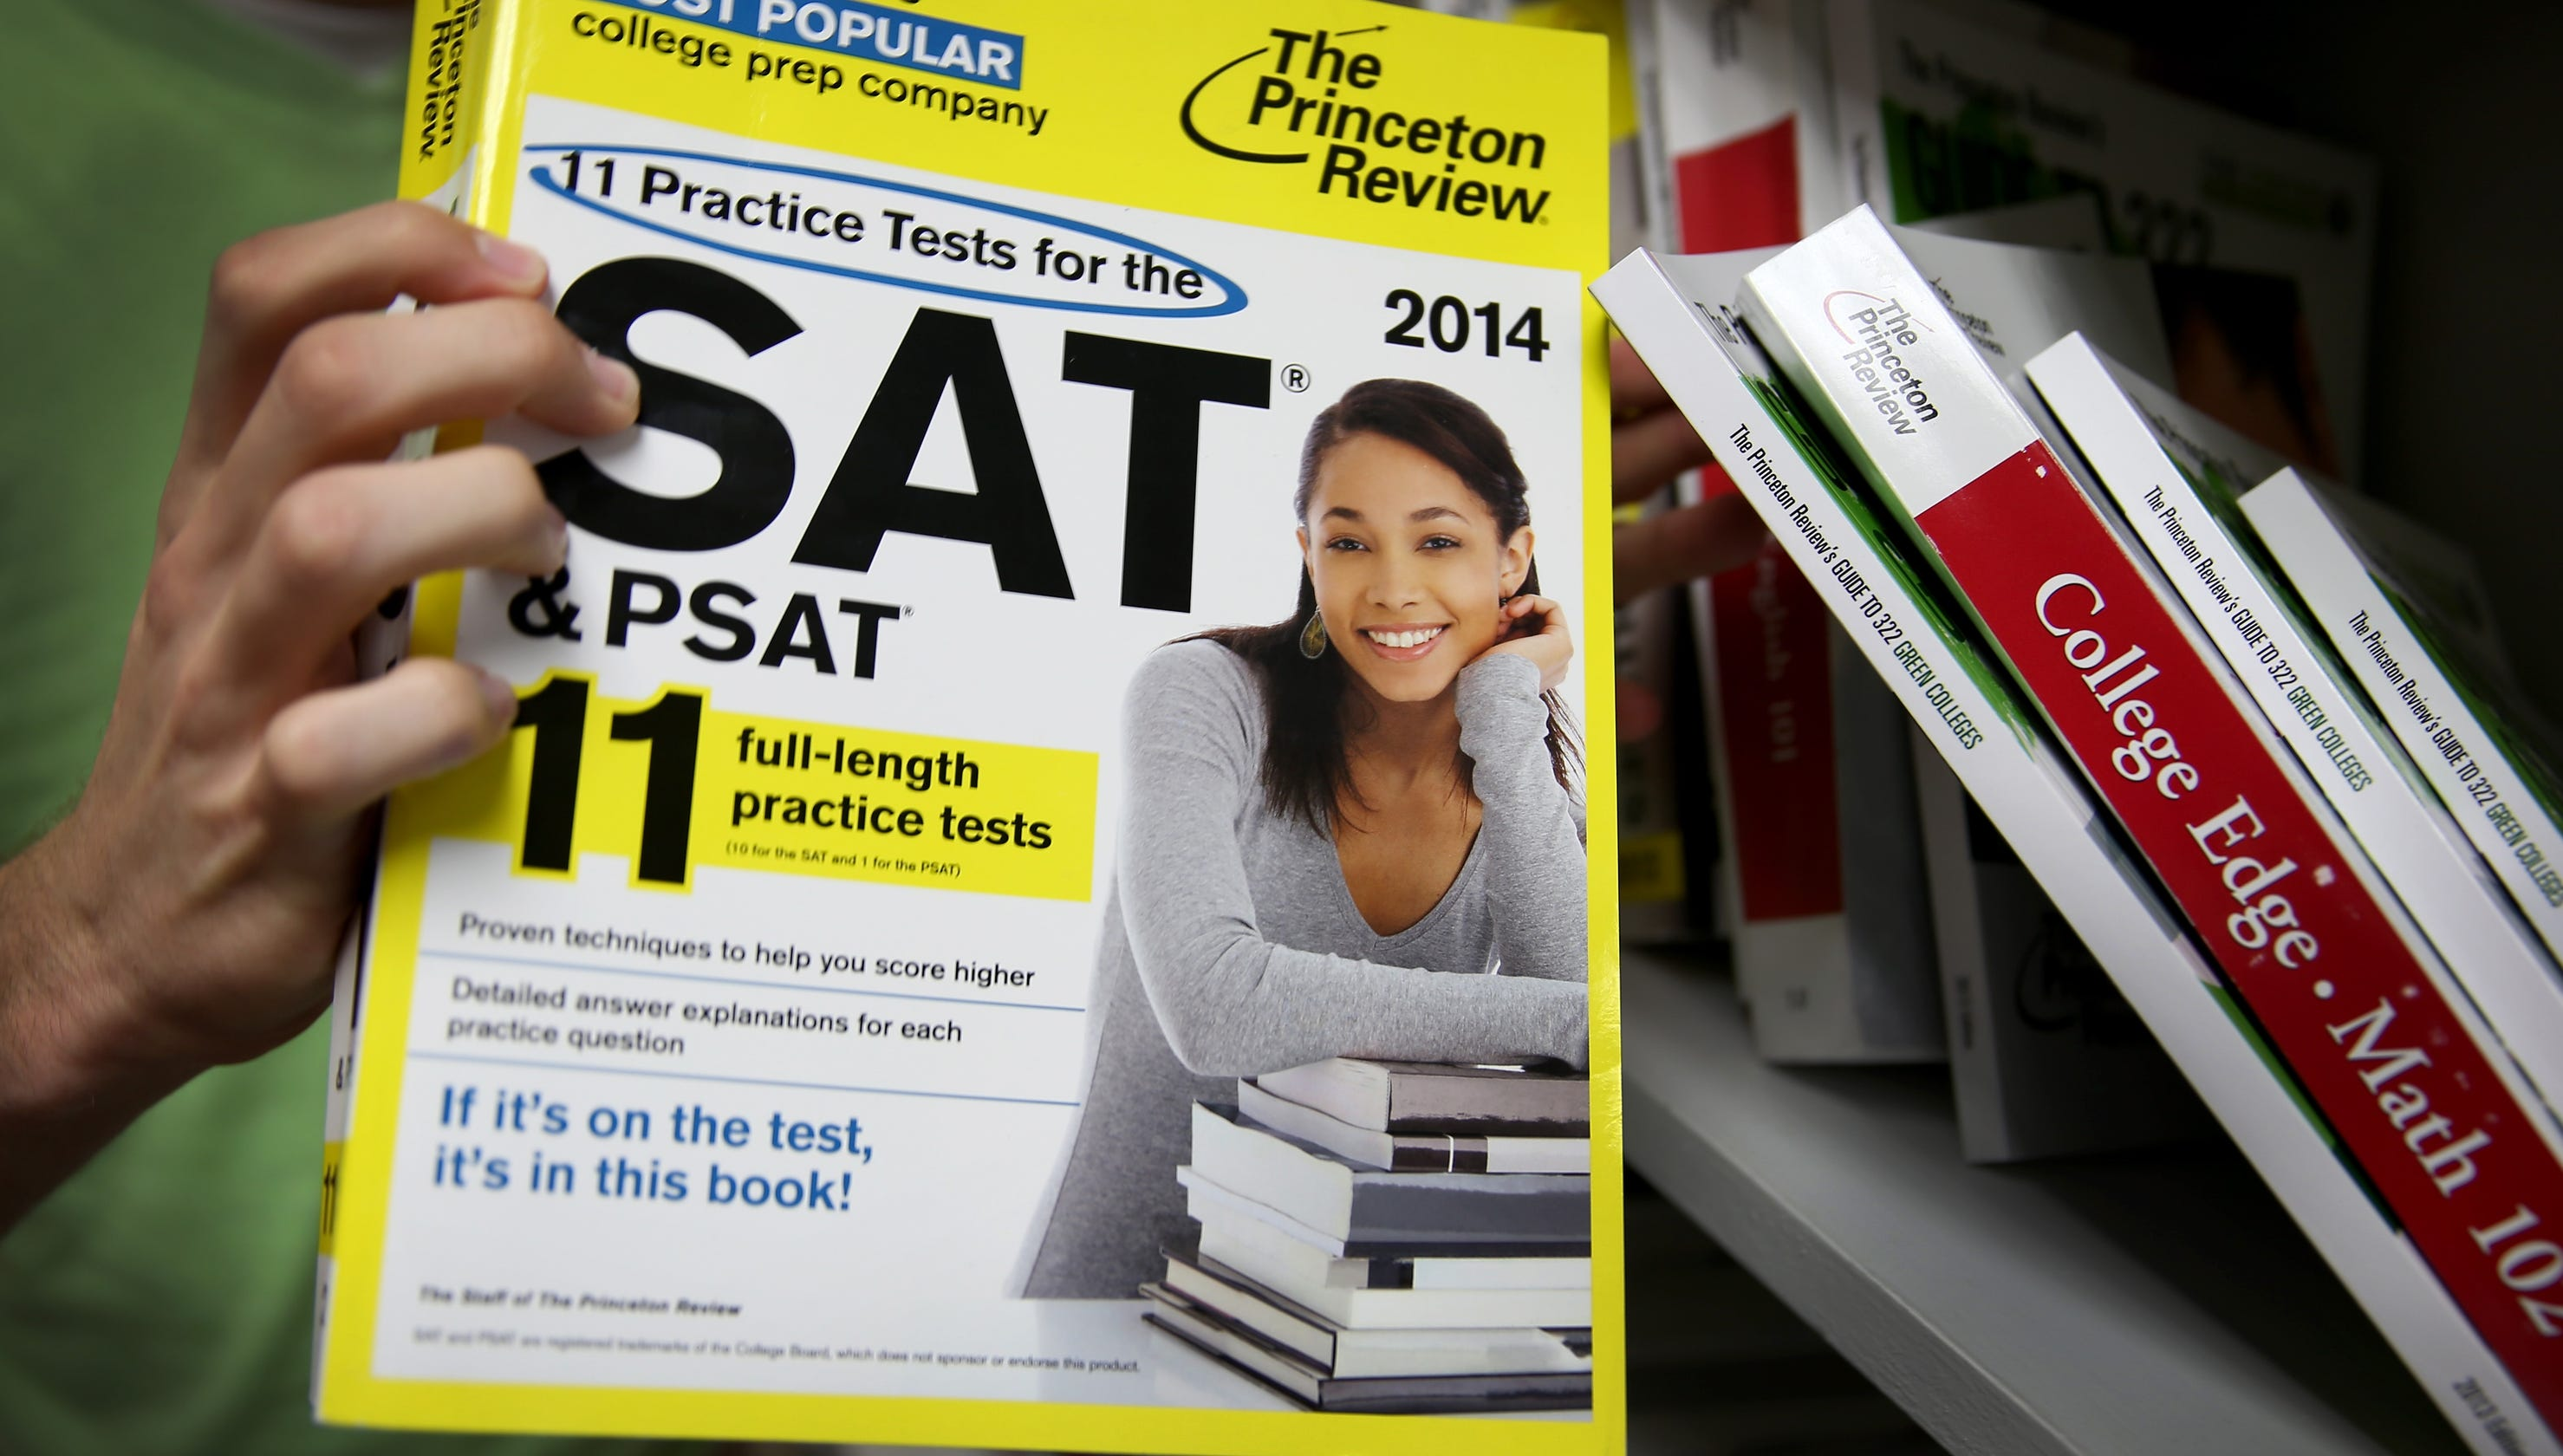 College admissions: College Board to add adversity score to SAT